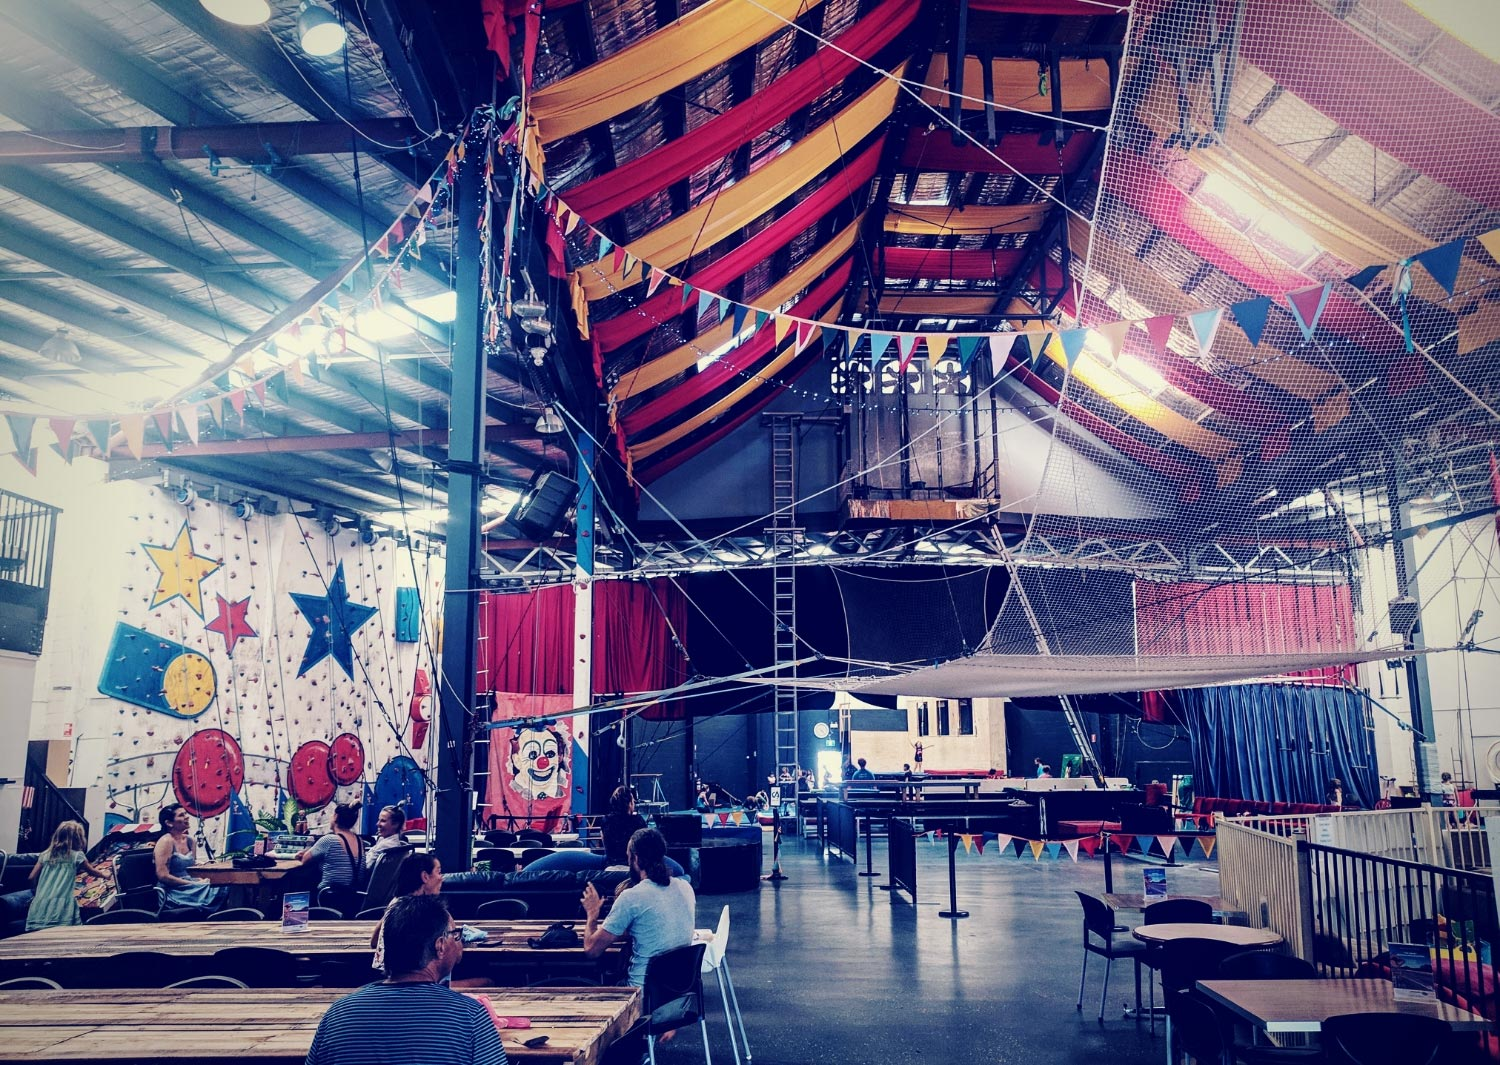 circus-arts-byron-bay-venue-1